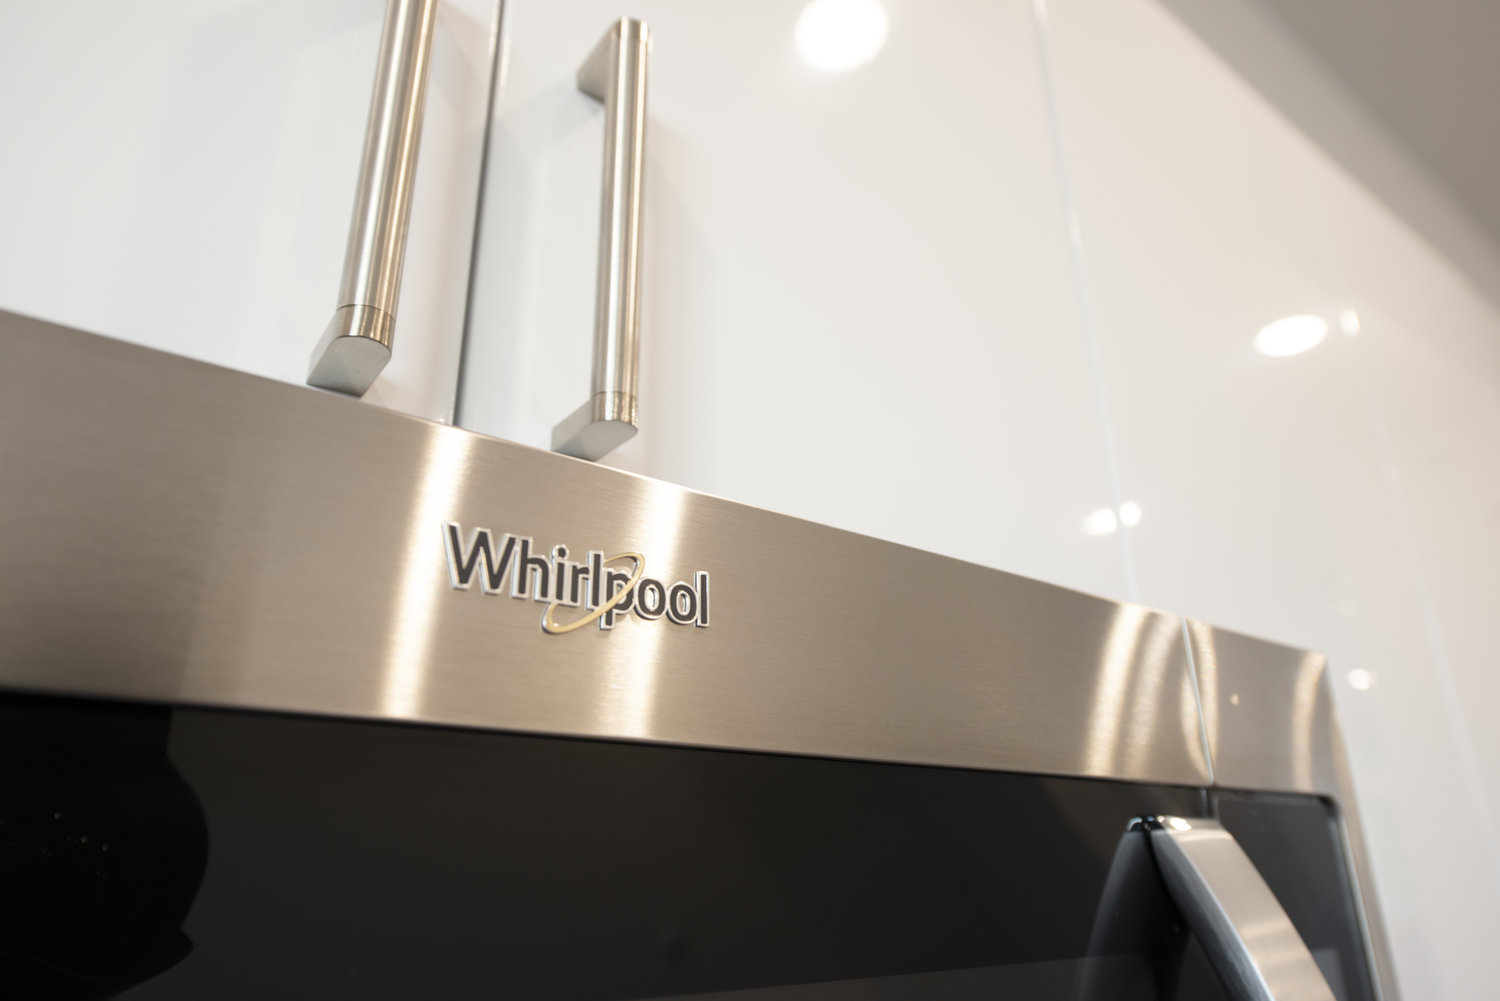 Whirlpool Appliance Packages